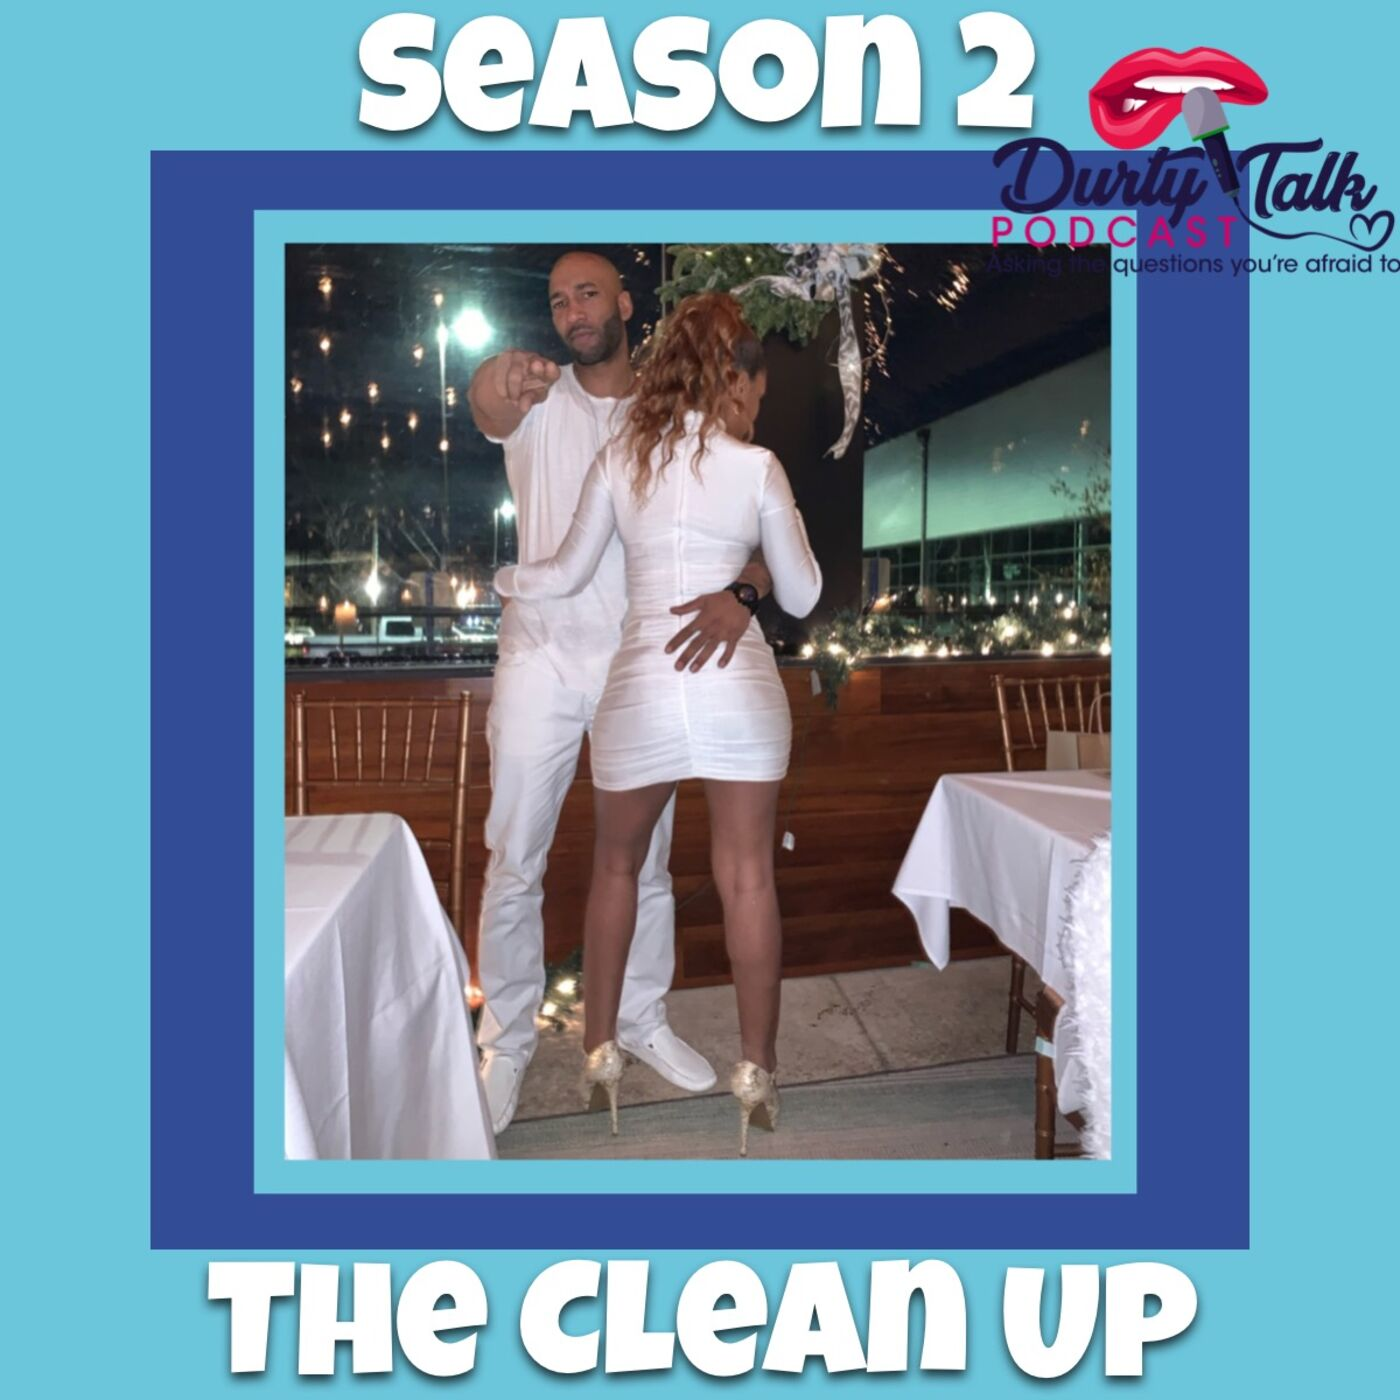 The Clean Up Season 2